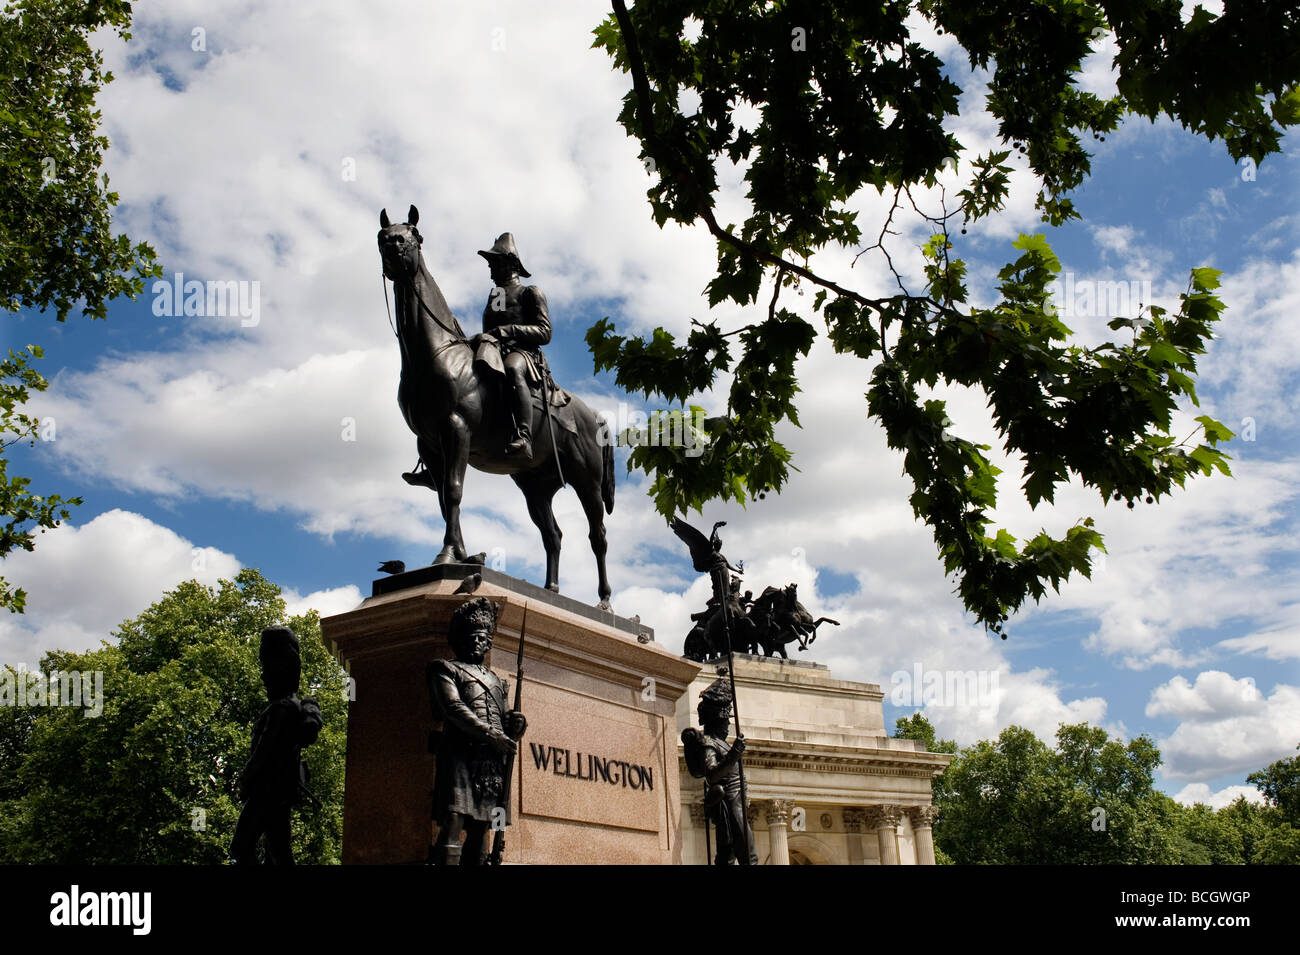 London Hyde park corner Statue of the Duke of Wellington  2009 - Stock Image